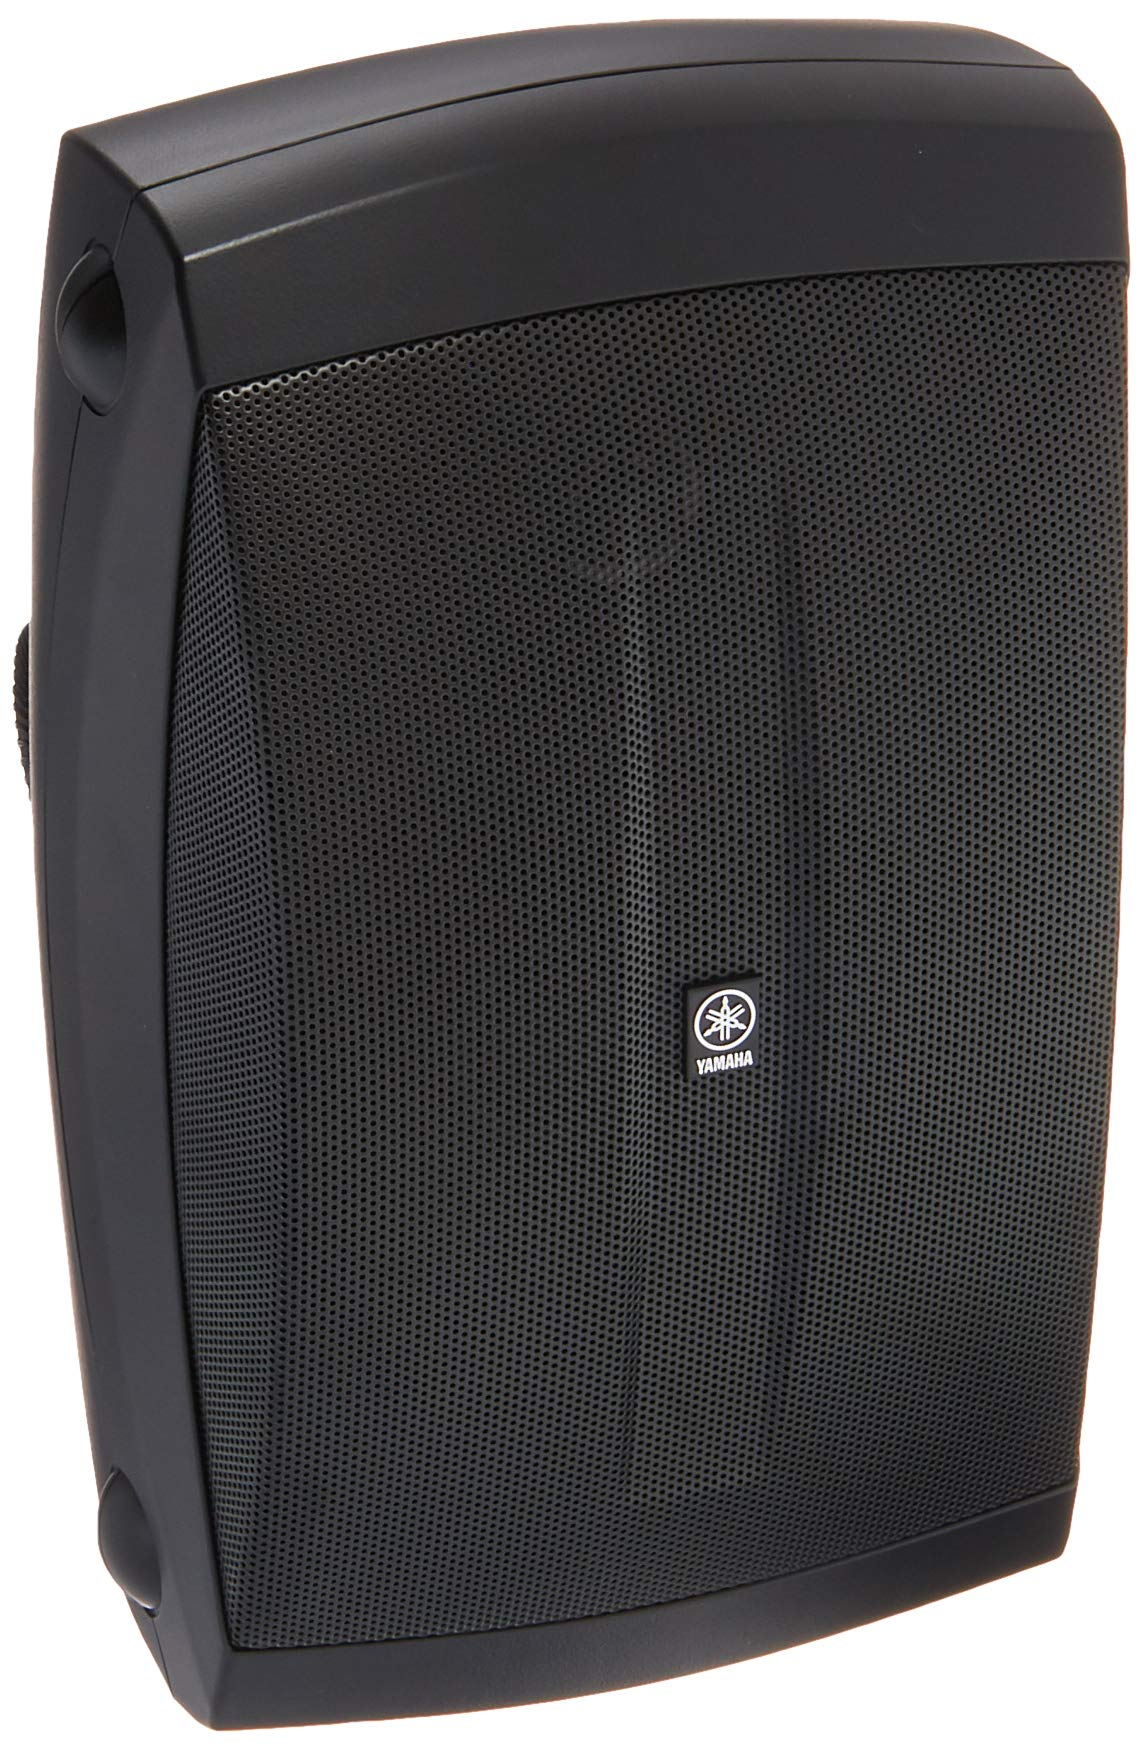 Yamaha NS-AW150BL 2-Way Indoor/Outdoor Speakers (Pair, Black) - Wired by Yamaha Audio